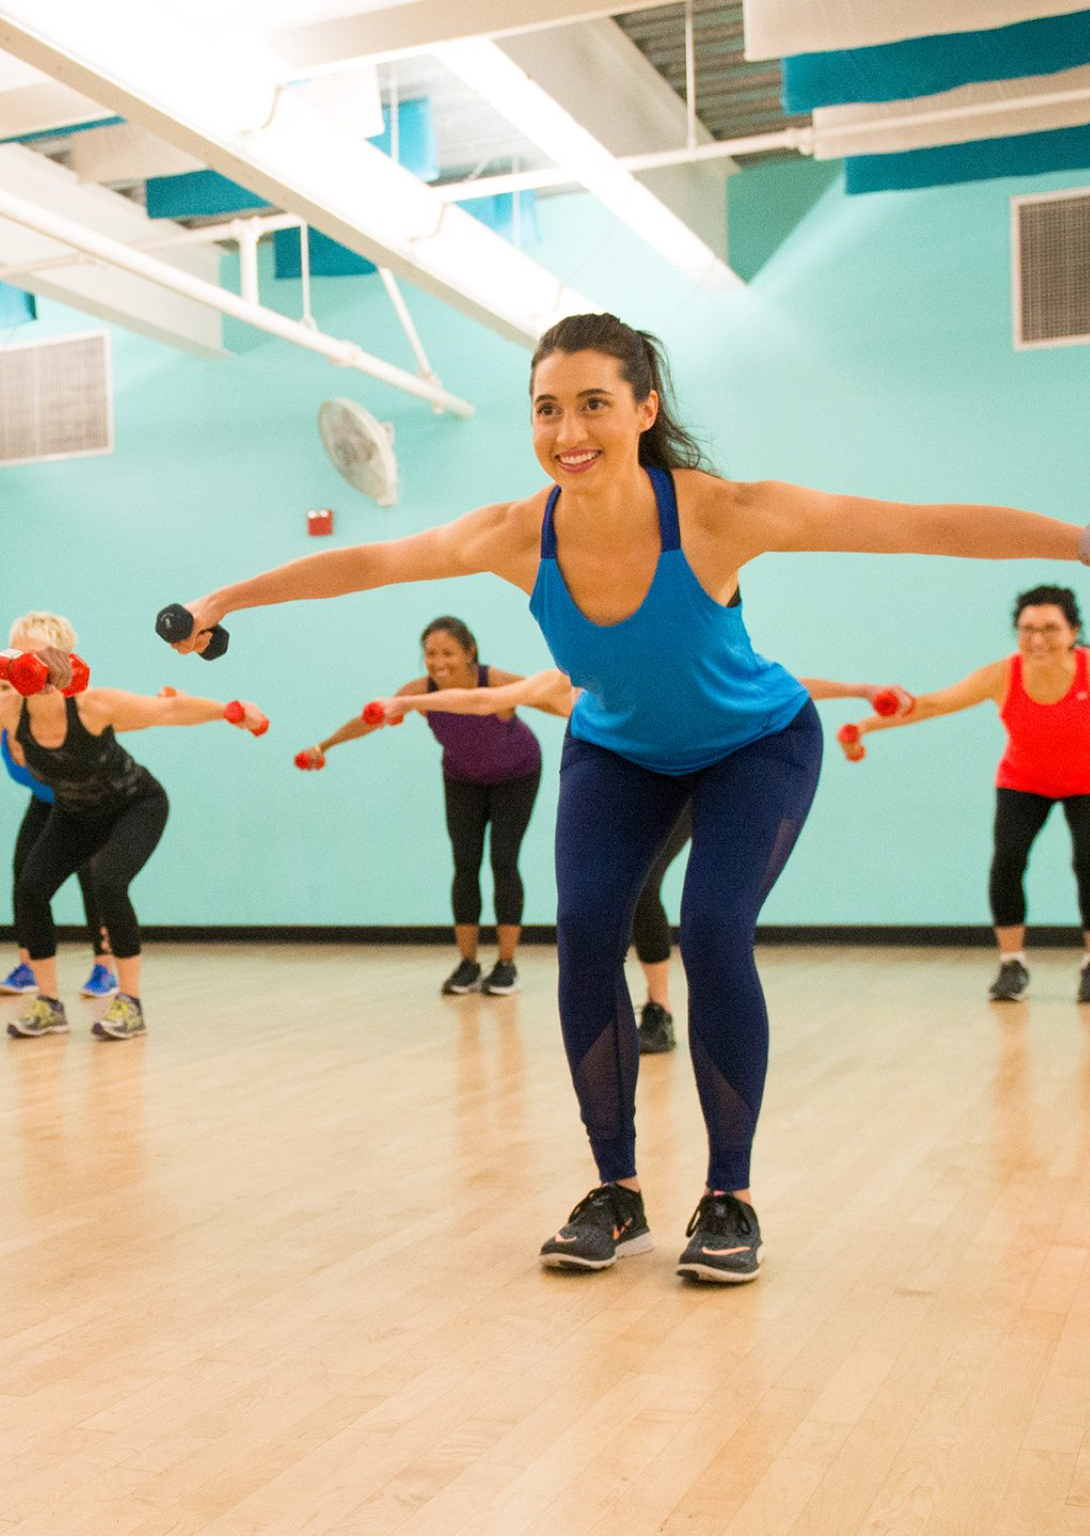 Woman participating in a group class in a gymnasium